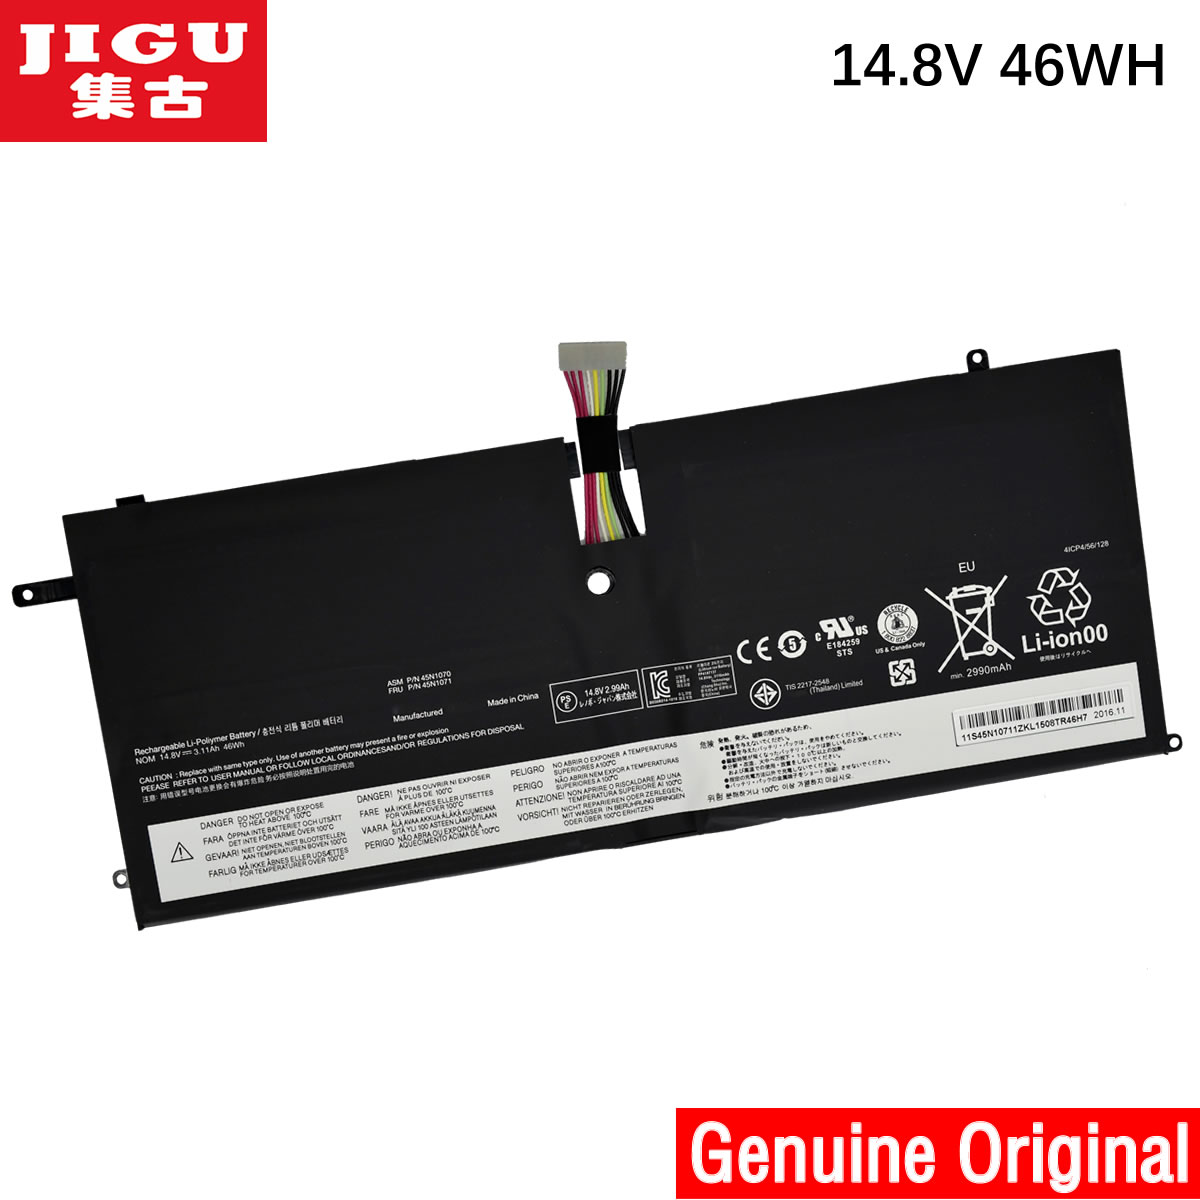 JIGU 45N1070 45N1071 4ICP4/51/95 Original laptop Battery For Lenovo ThinkPad New X1 Carbon X1C 14.8V 46WH jigu original laptop battery for lenovo for thinkpad sl400 sl410 sl410k sl500 sl510 t410 t410i t420 t420i t520 w510 w520